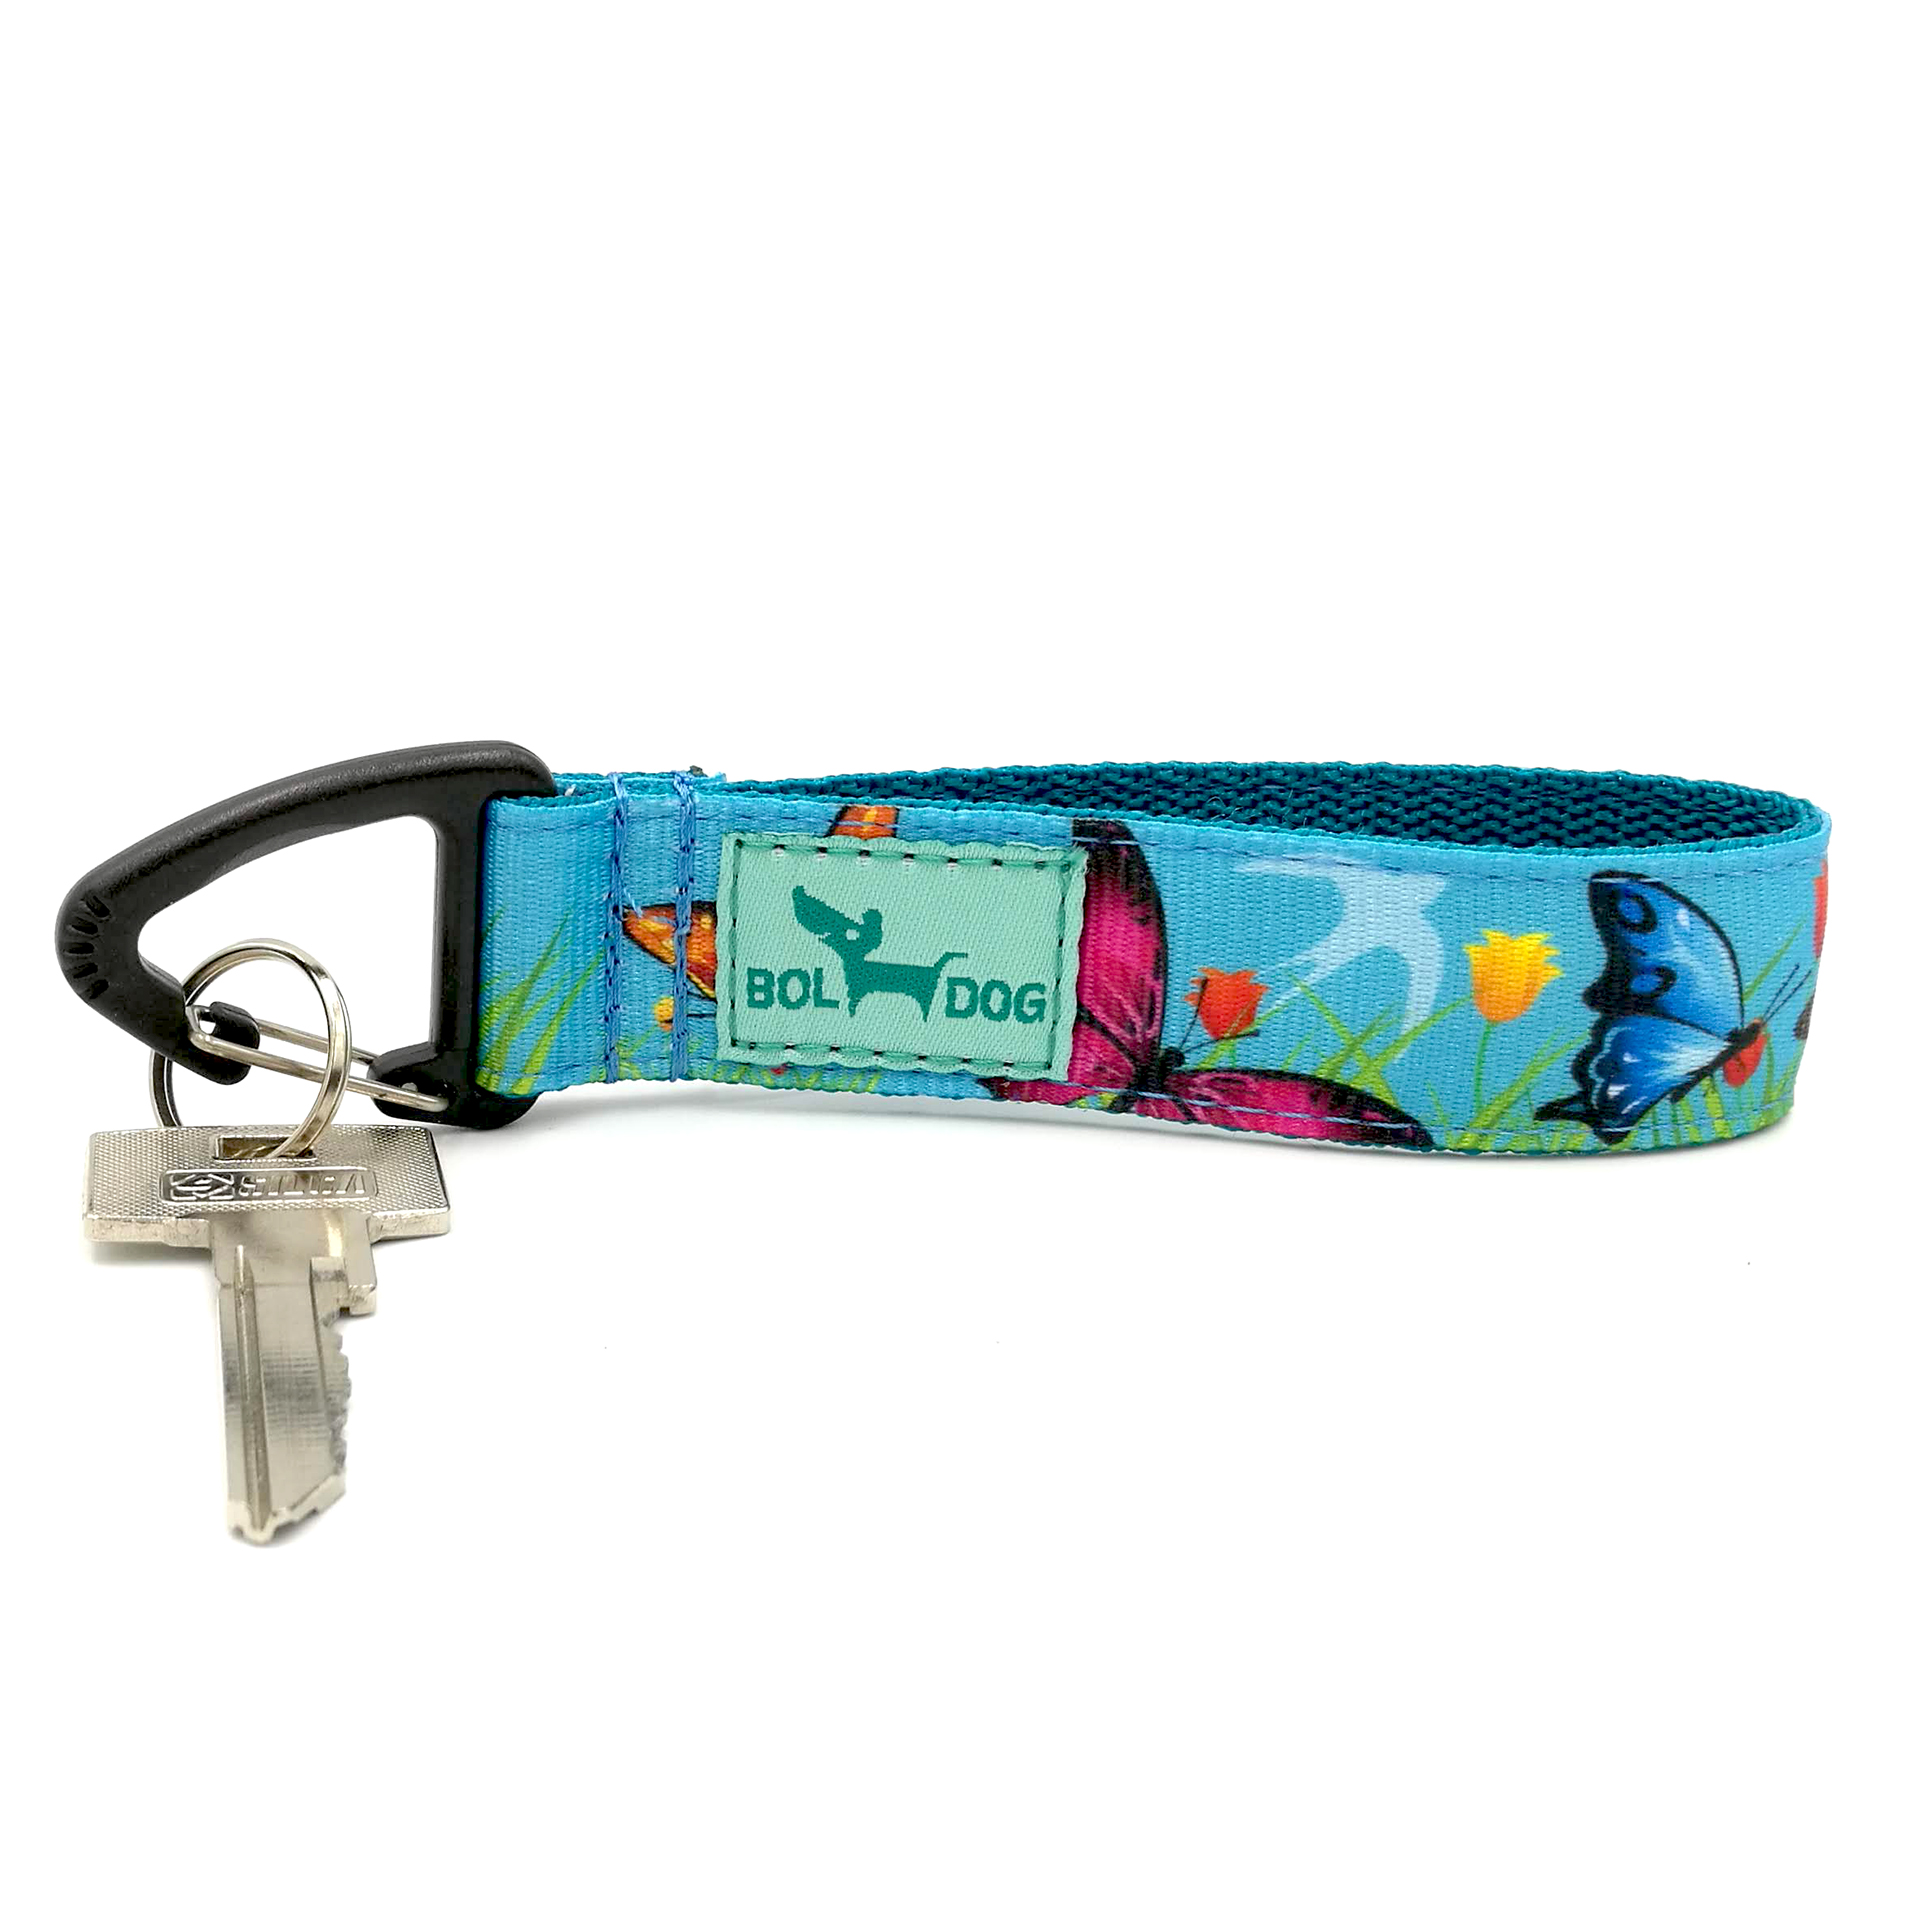 Butterfly key holder